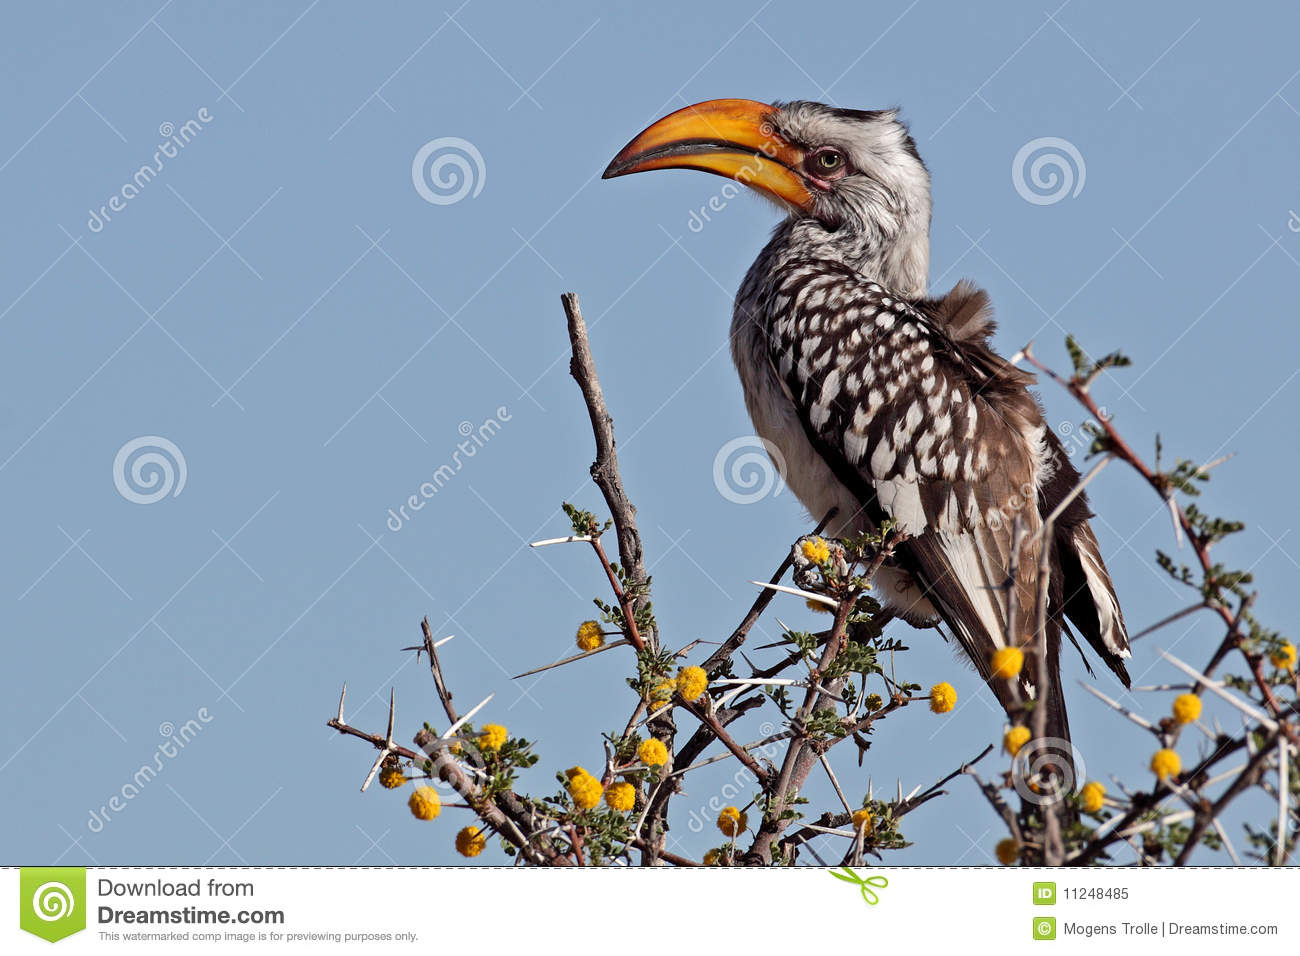 Southern Yellow-billed Hornbill clipart #17, Download drawings